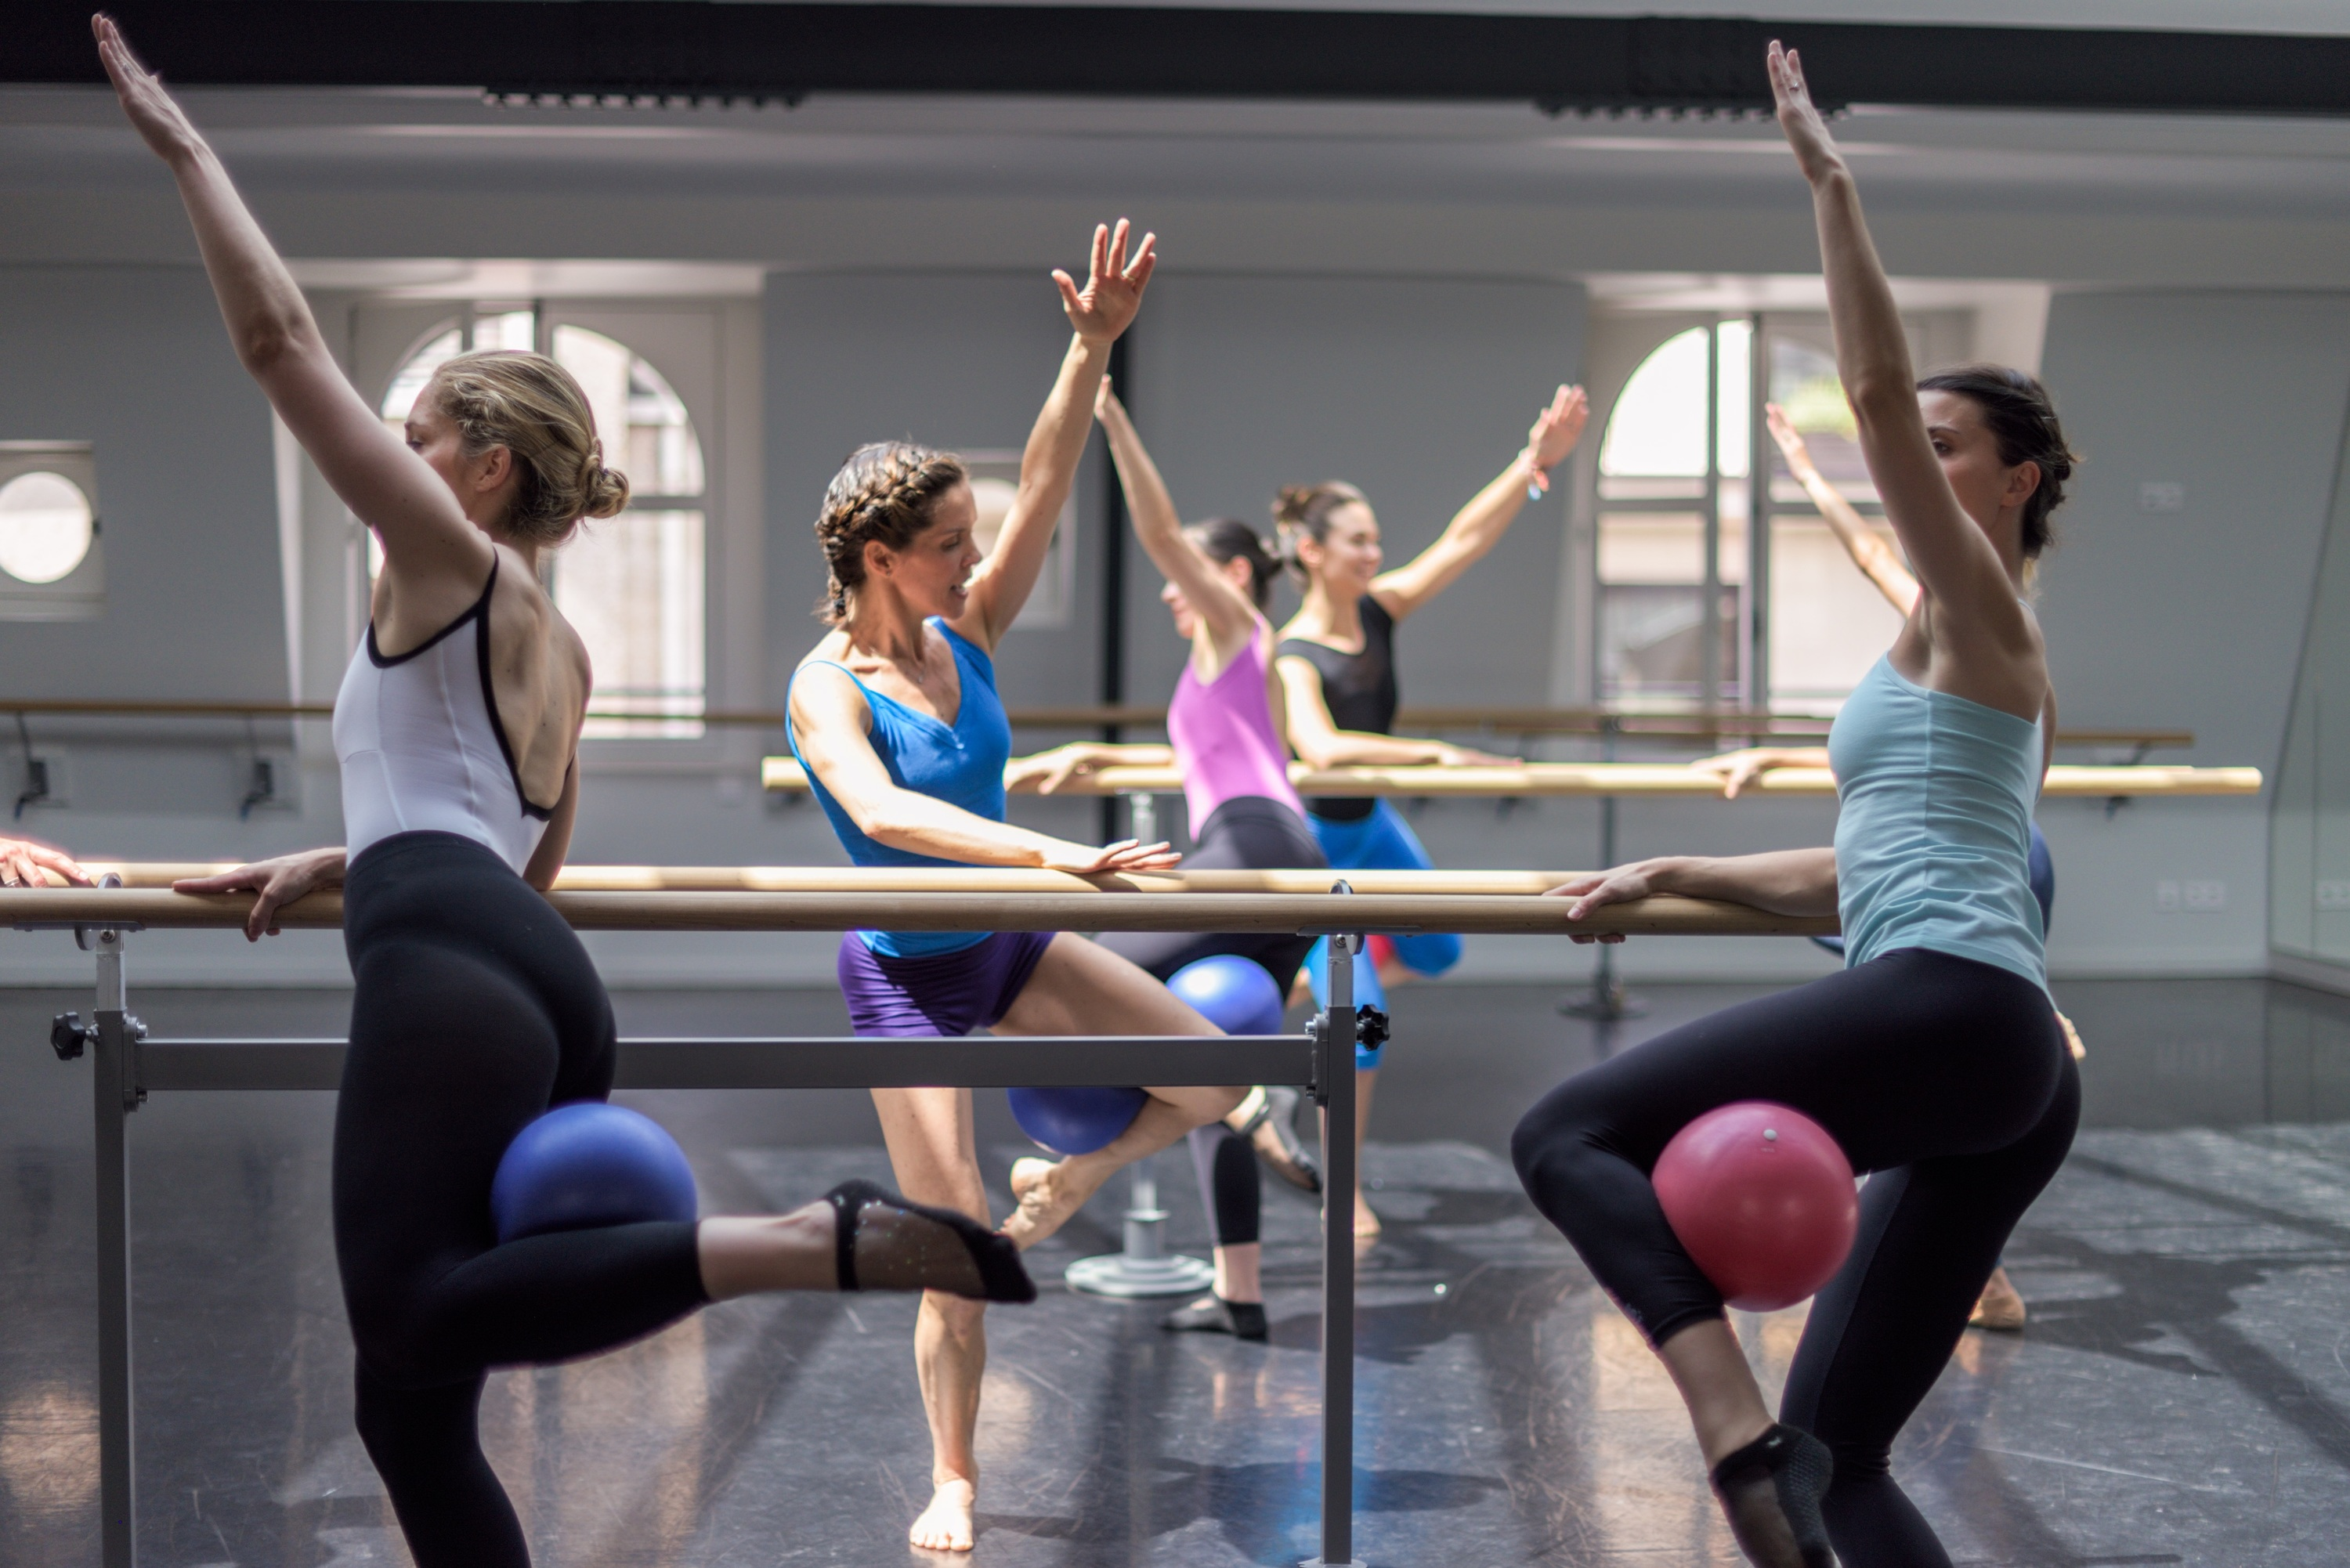 Barre Fitness at BarreShape